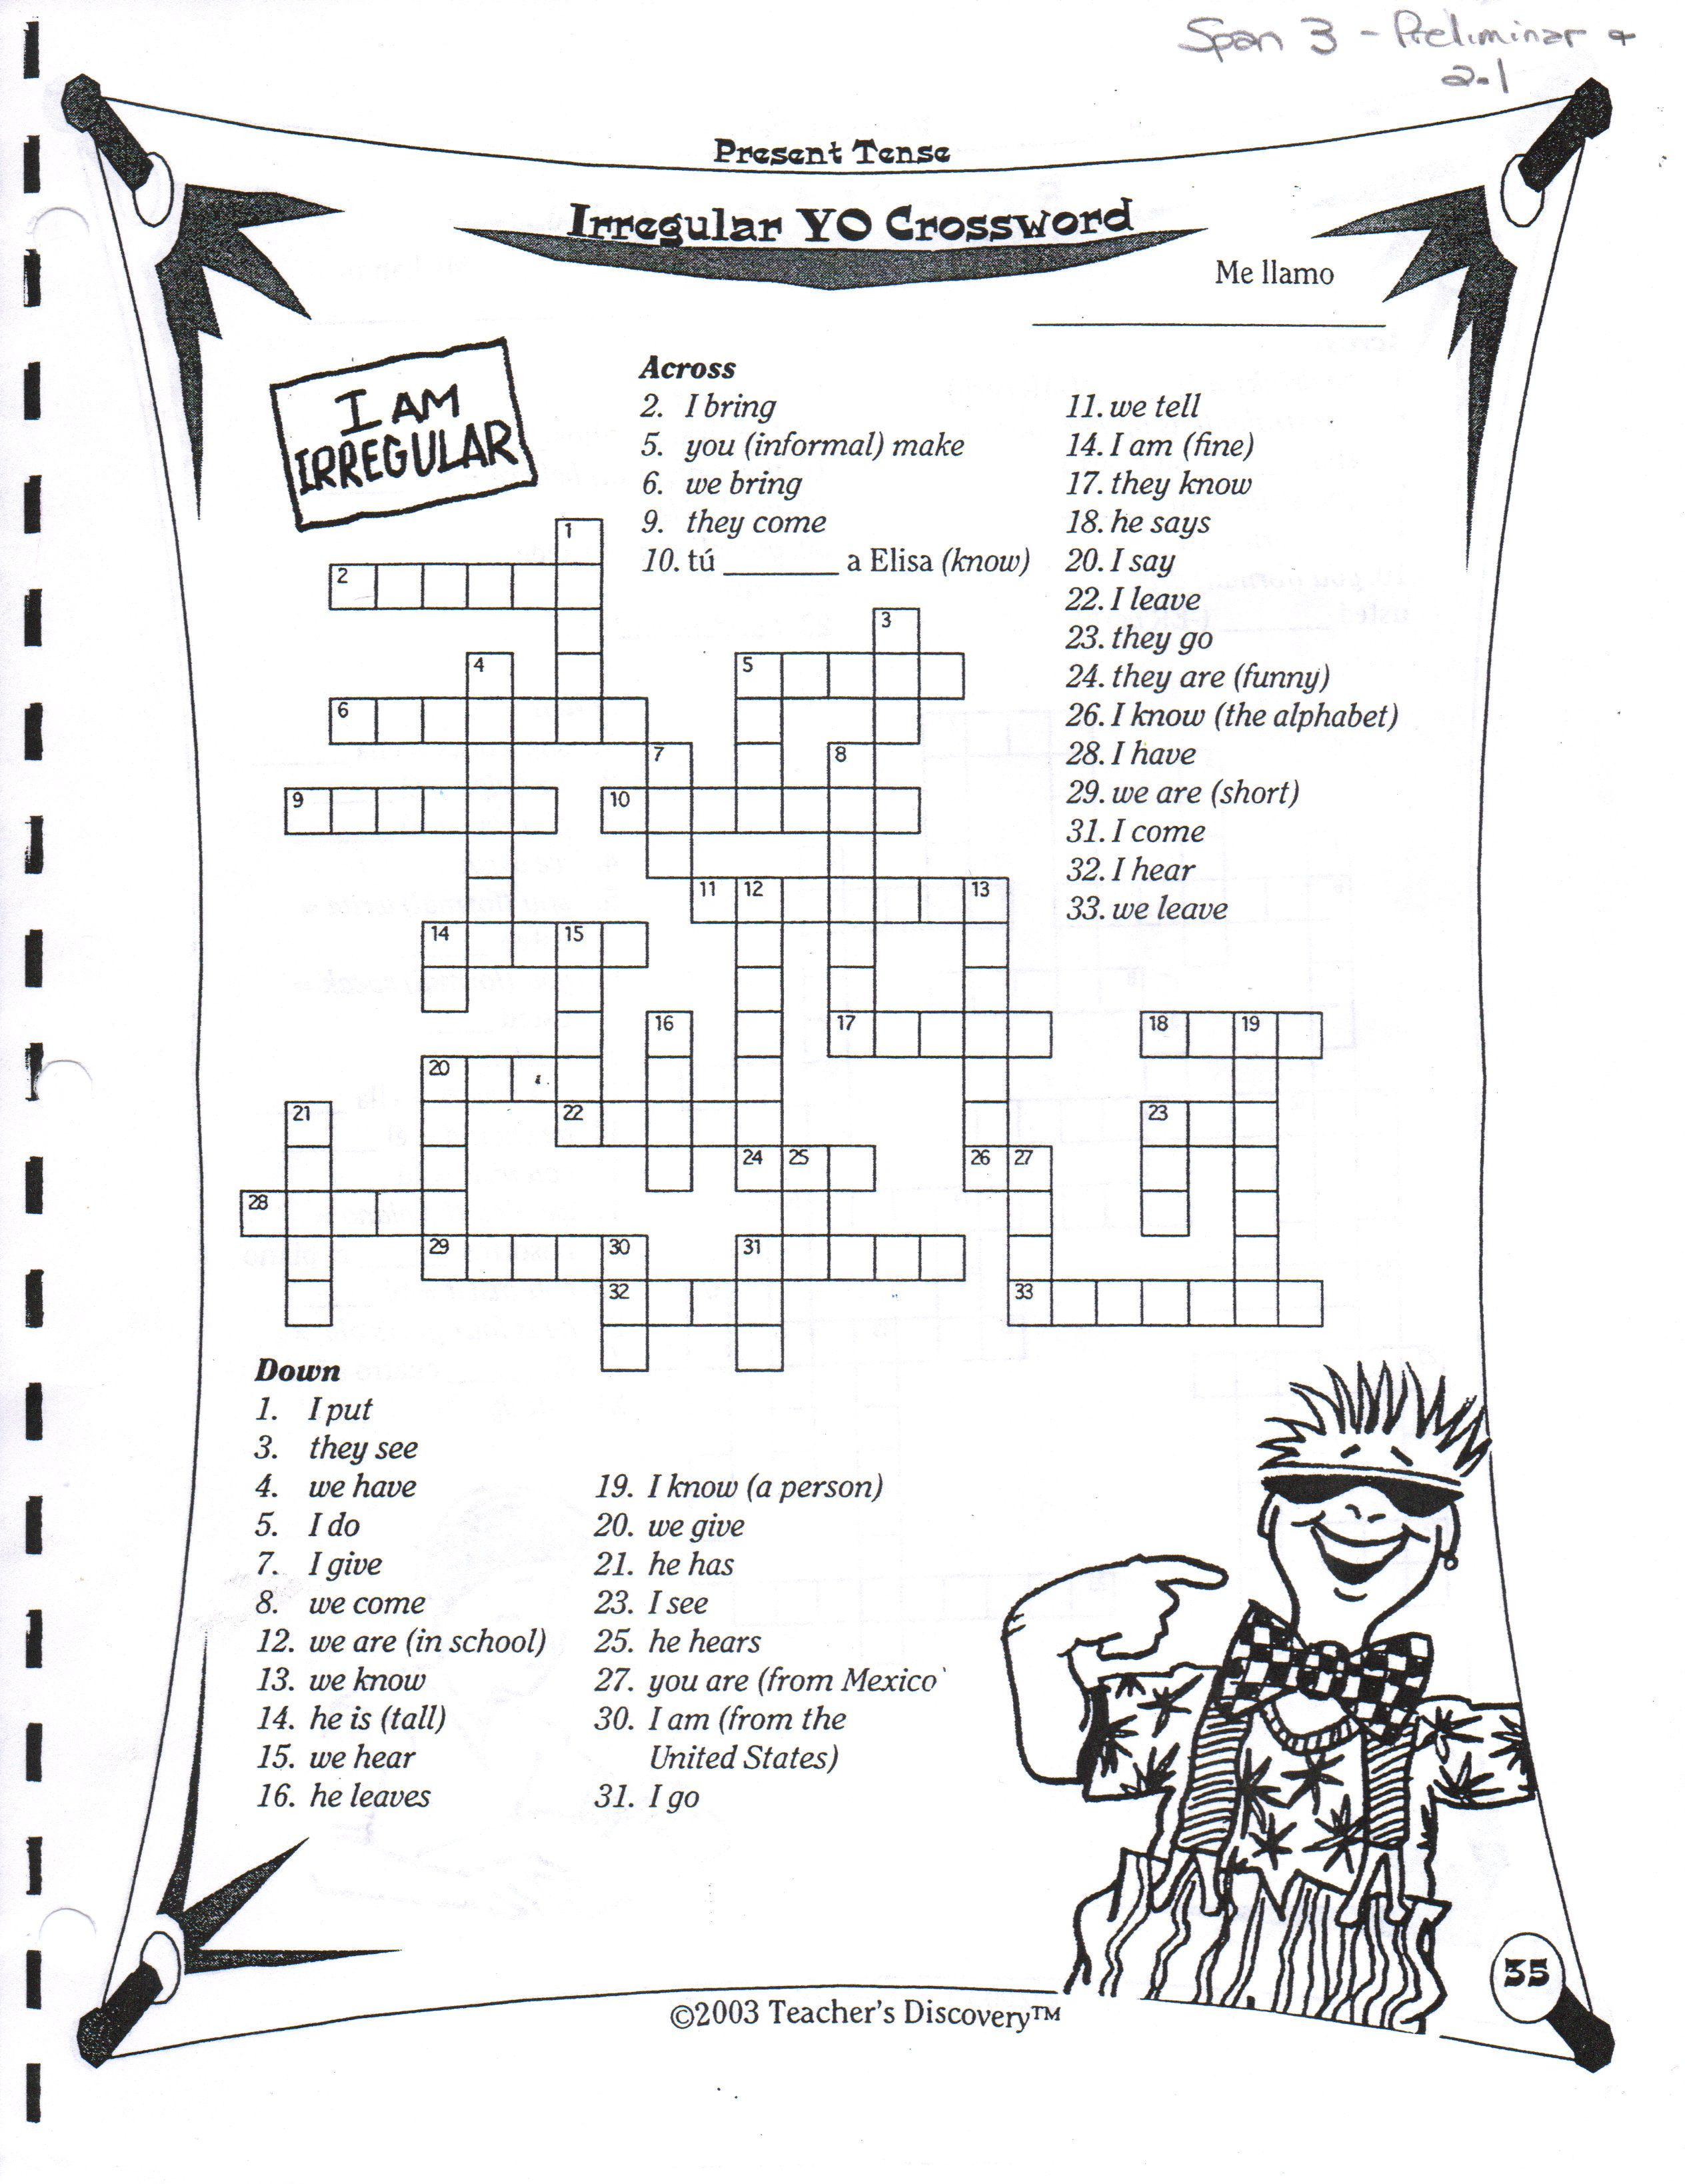 Crossword Puzzles For Spanish Class